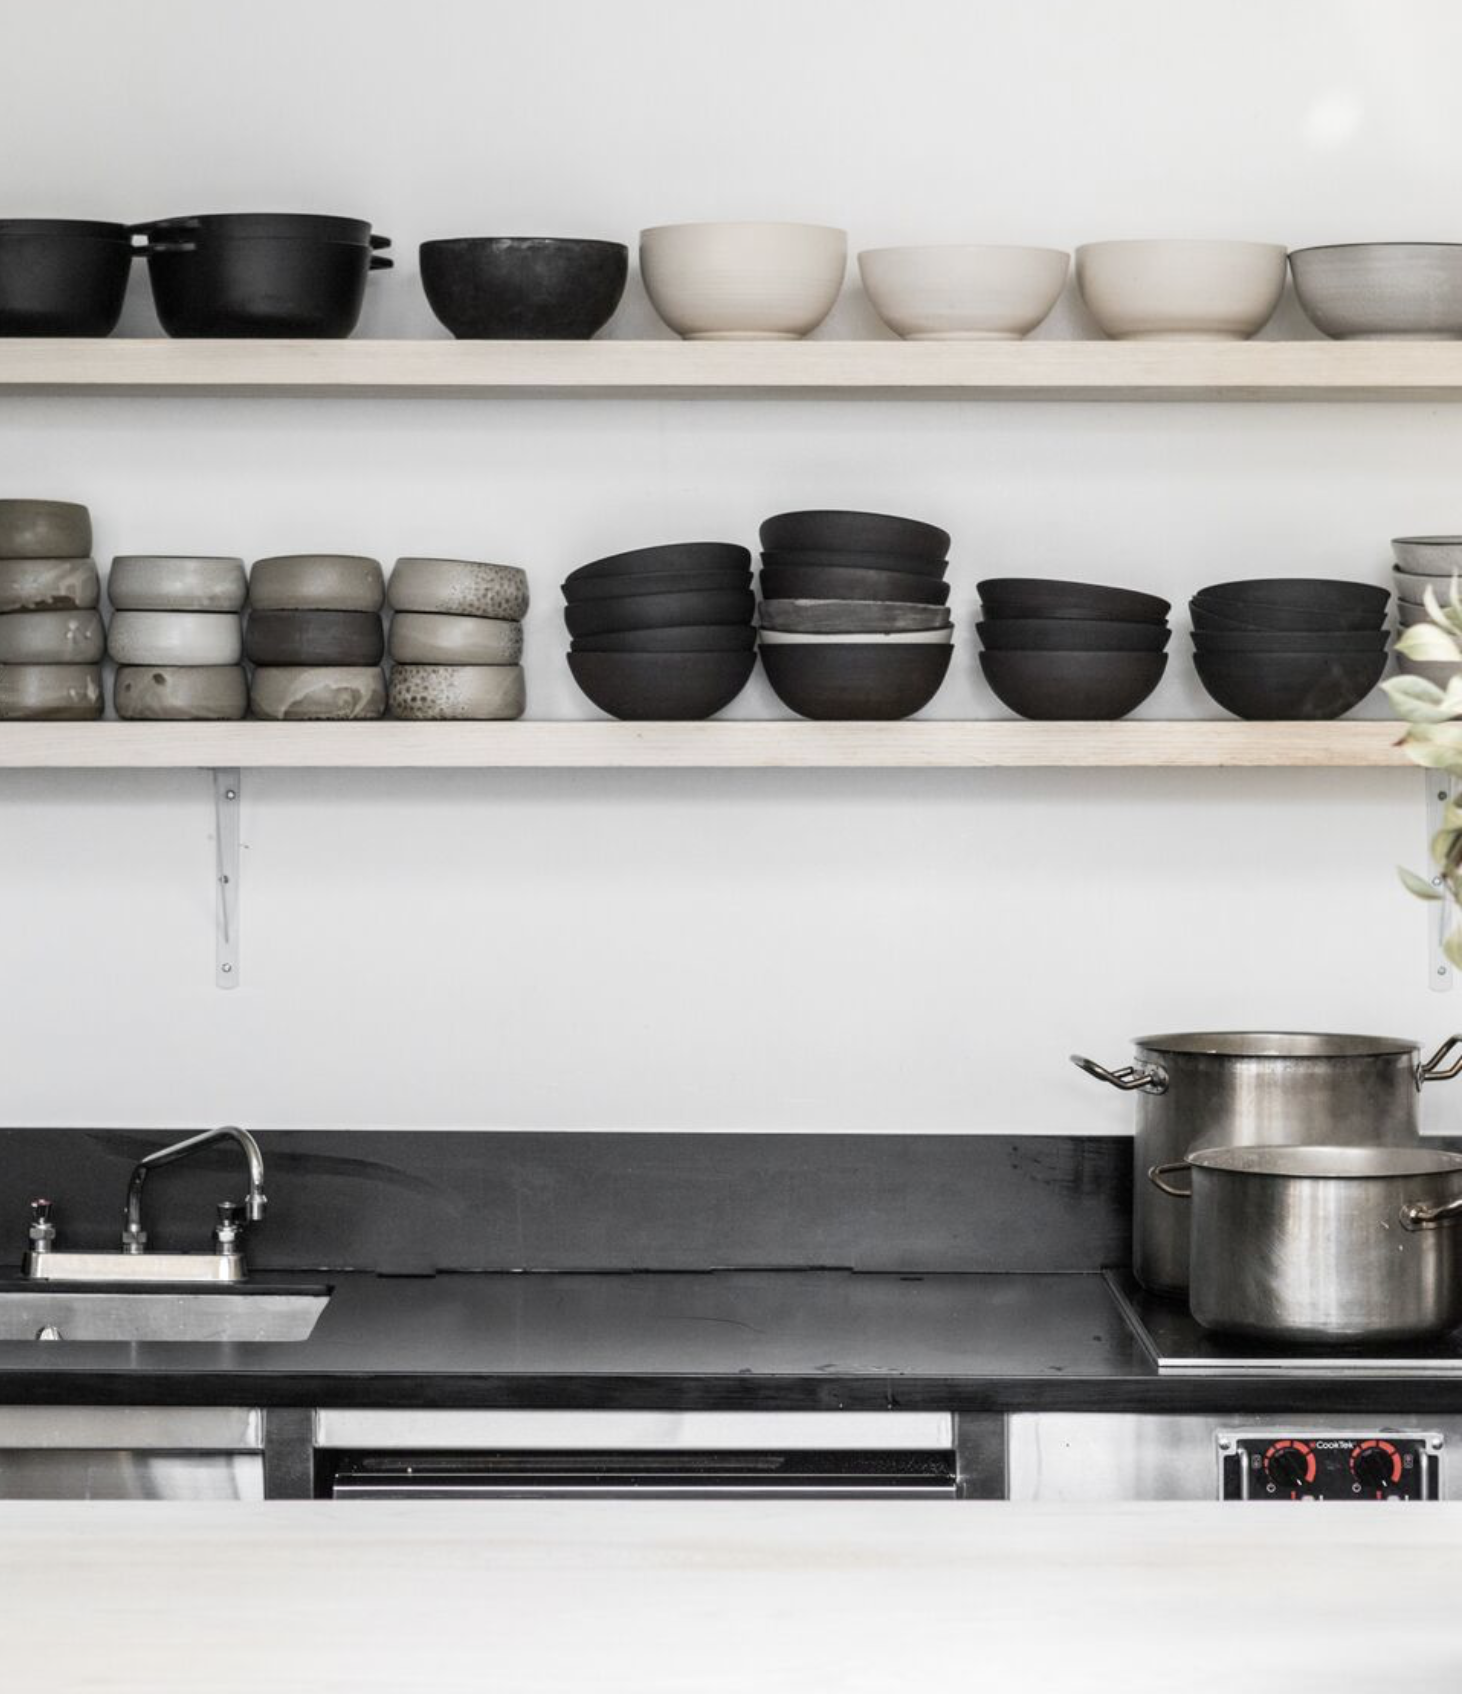 In the food prep areas, Kahn used composite quartz in the food-prep areas. For more on the subject, see  Remodeling 101: Engineered Quartz Countertops .